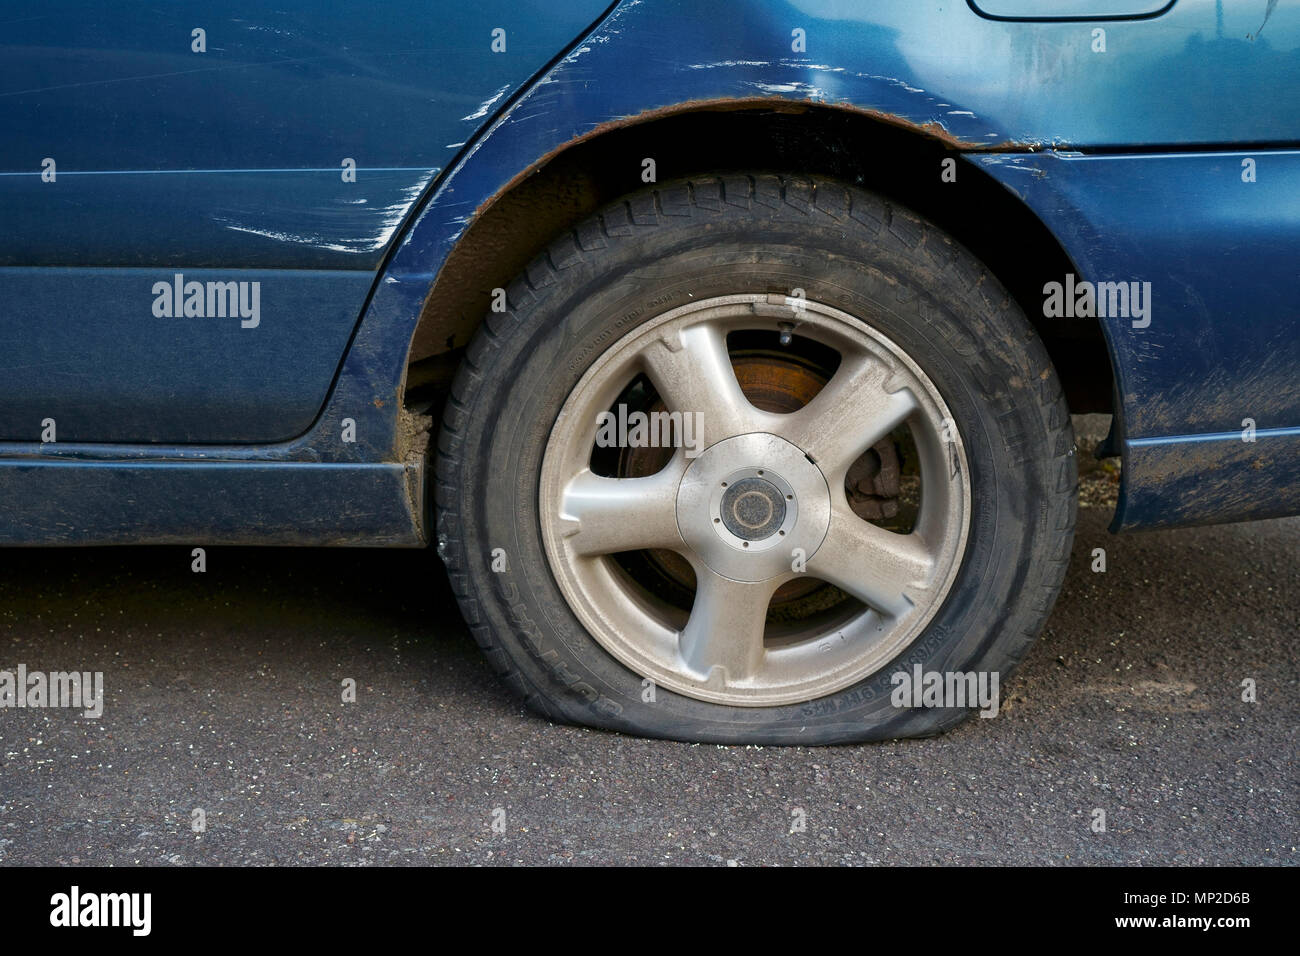 Car with a puncture and a flat tire - Stock Image